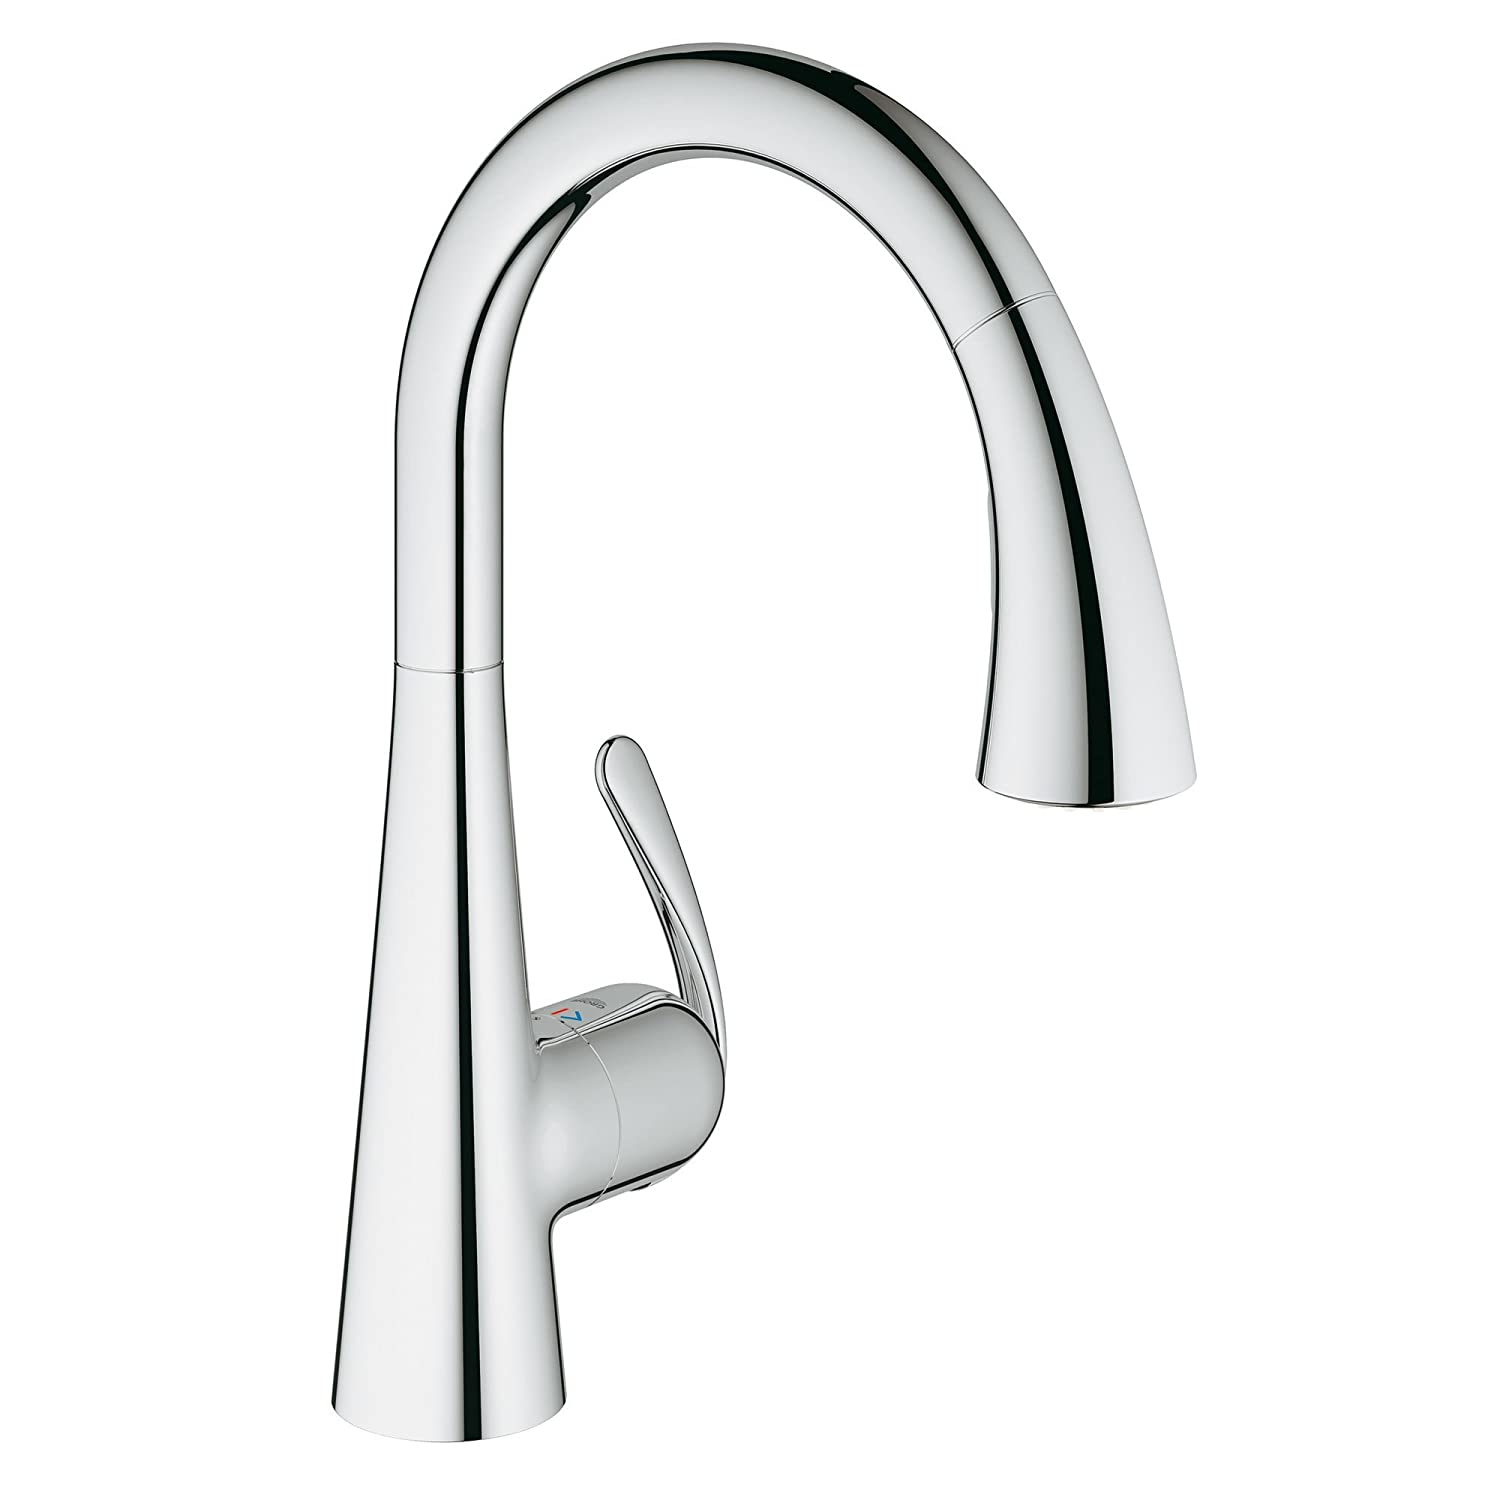 ladylux cafe single handle pull down foot control kitchen faucet ladylux cafe single handle pull down foot control kitchen faucet with dual spray amazon com